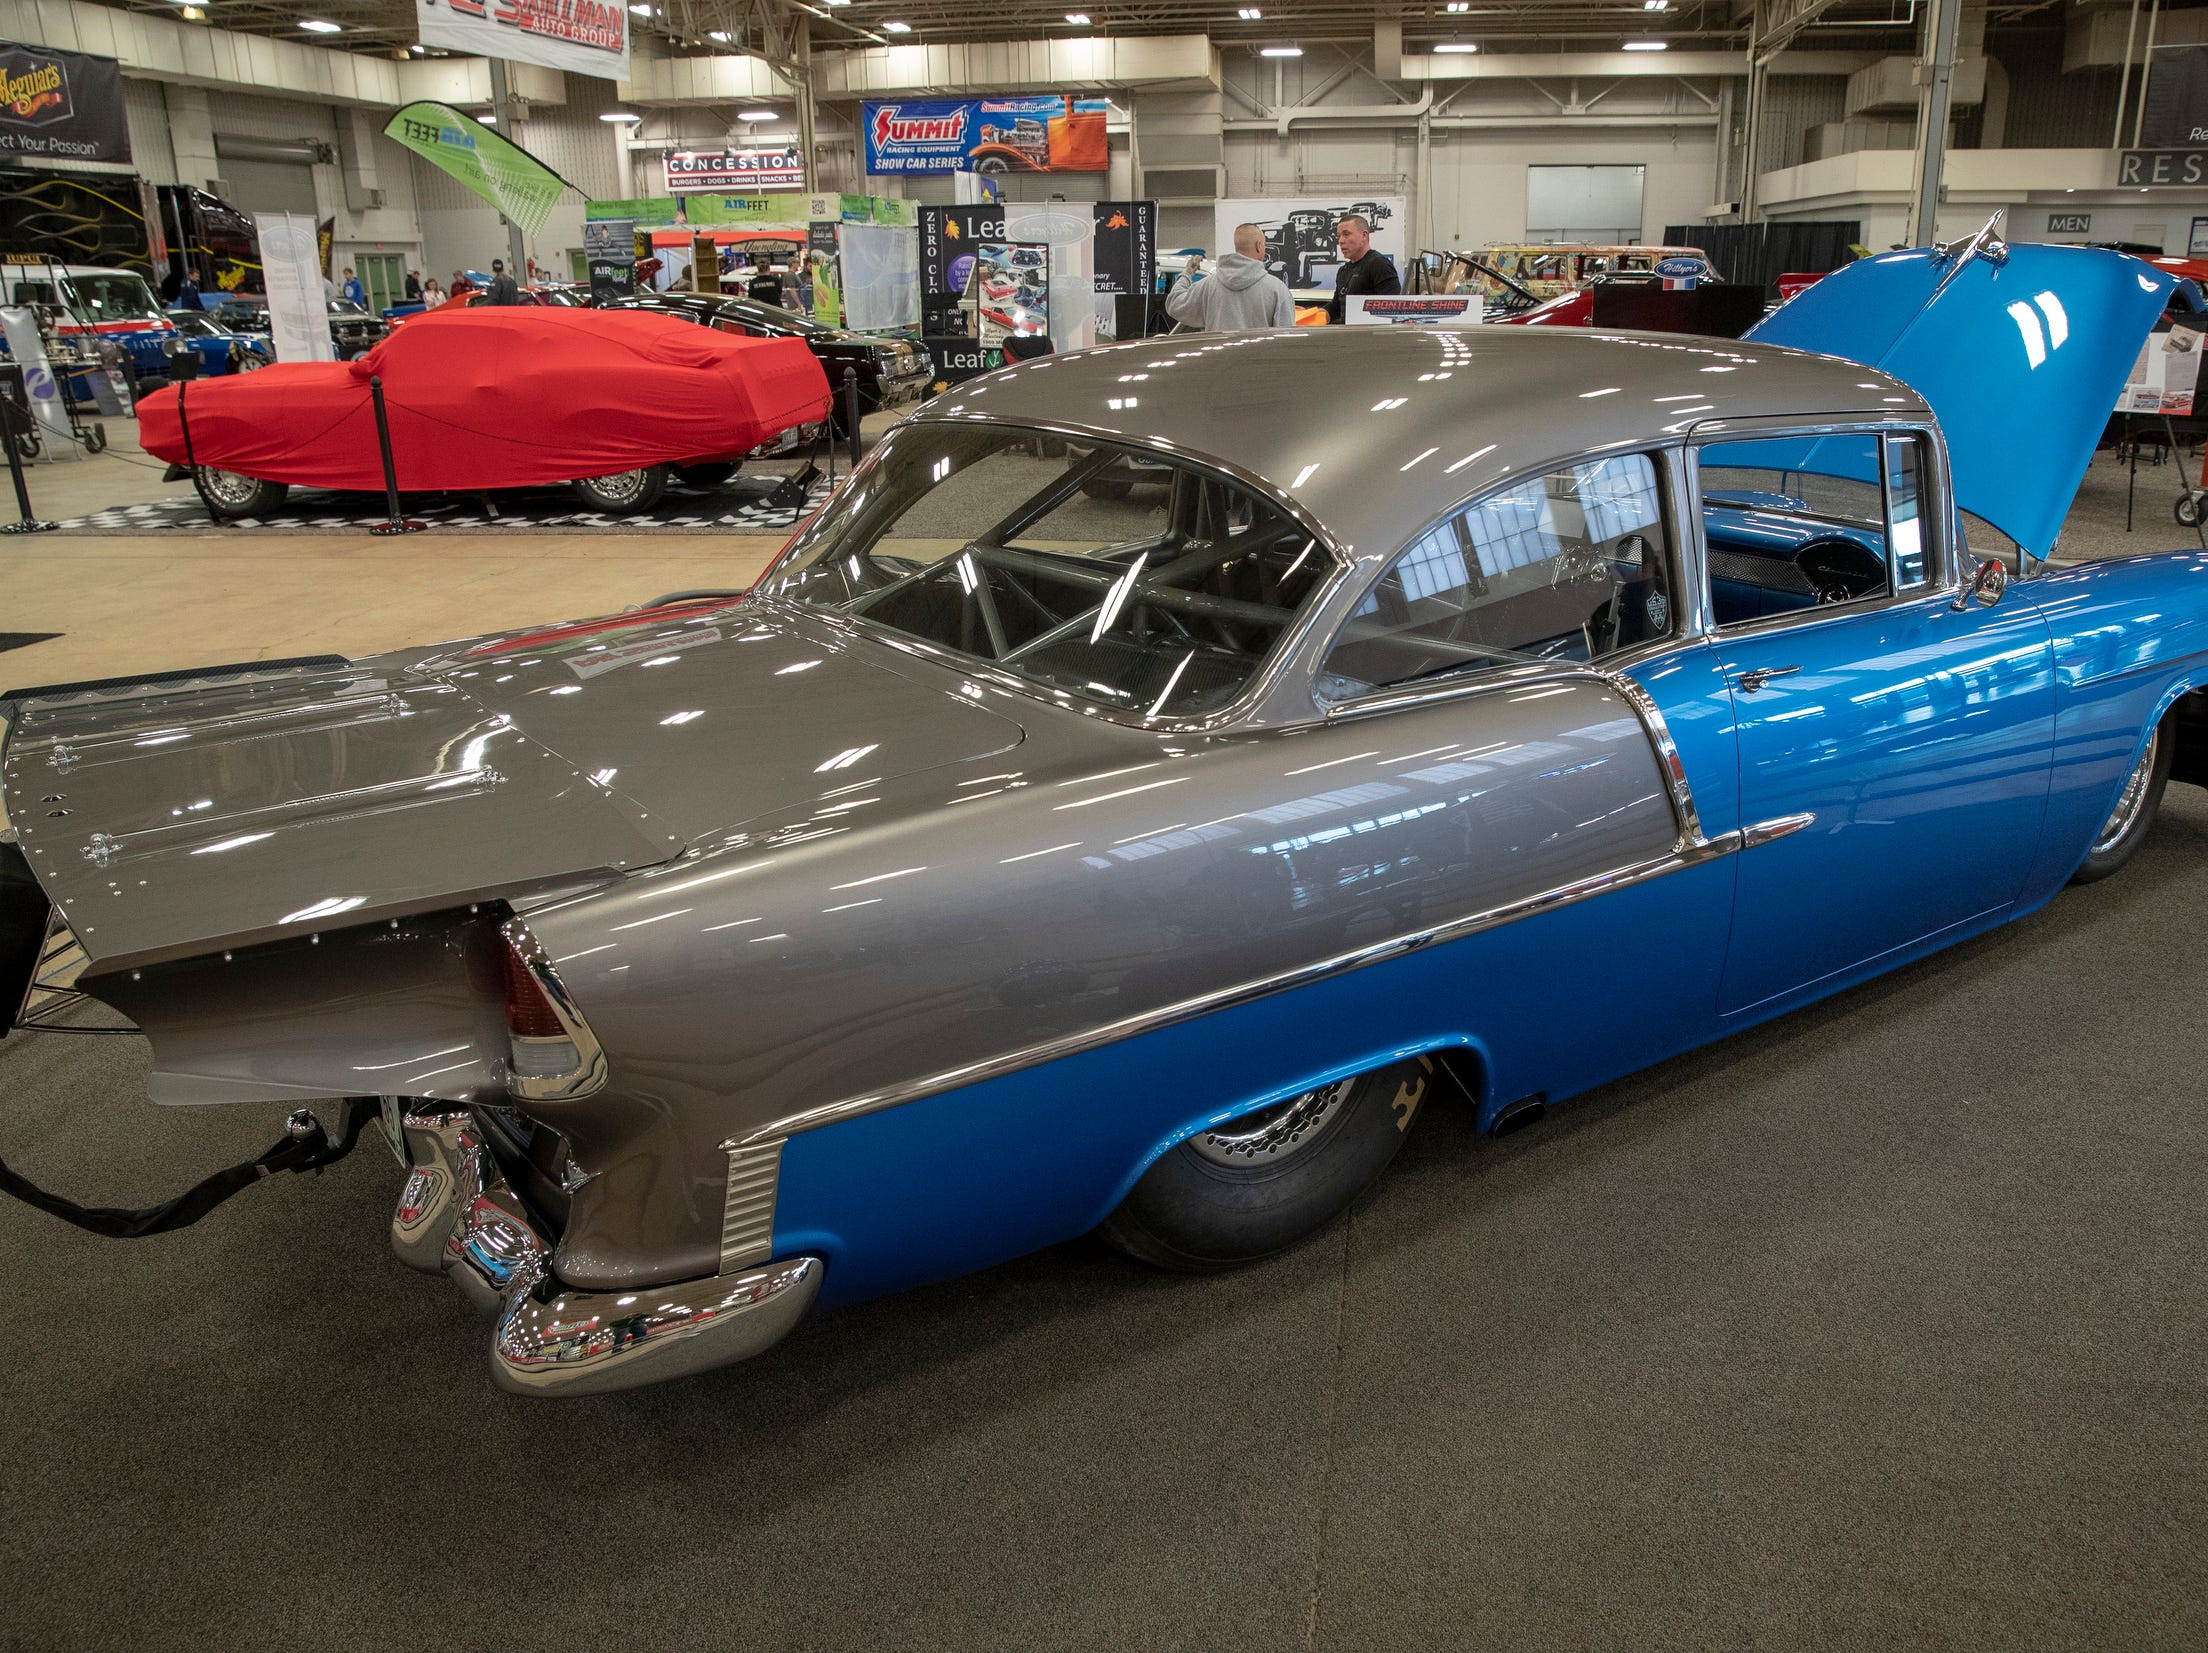 A 1955 Chevy, at World of Wheels at the Indiana State Fairgrounds, Indianapolis, Friday, Feb. 8, 2019. The event runs through the weekend and features four big rooms of stock and heavily customized cars.